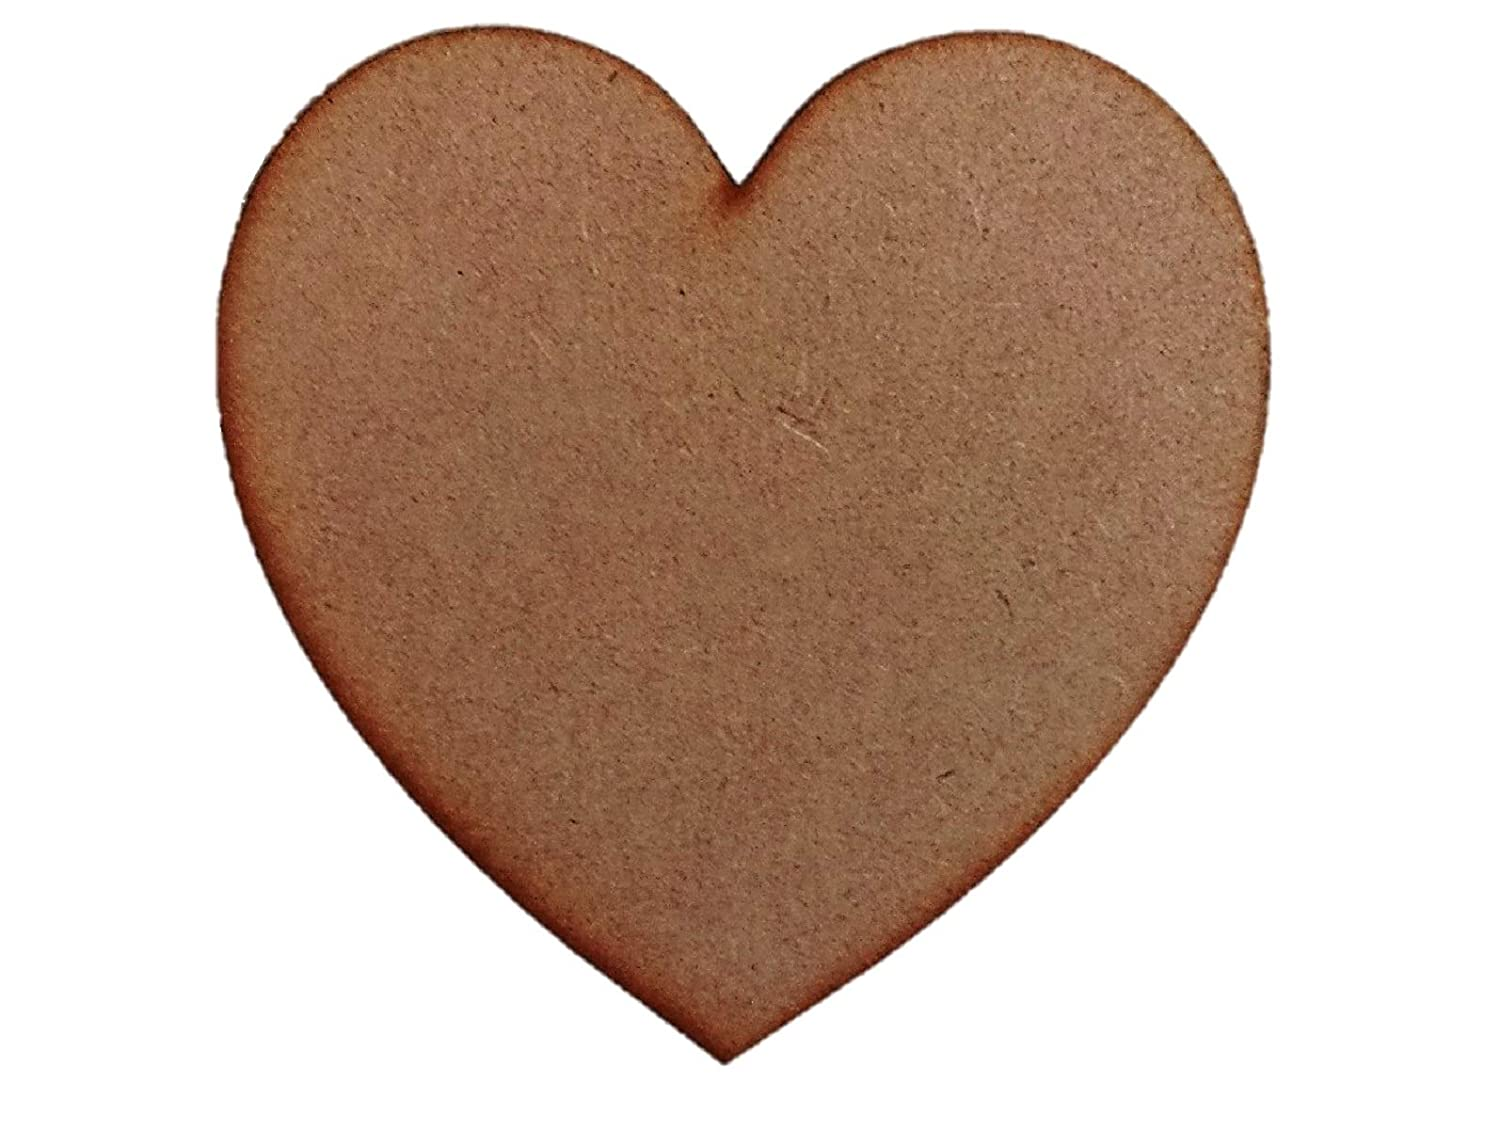 30cm Heart Plaques x5 Wooden Laser Cut mdf Craft Blanks Shapes